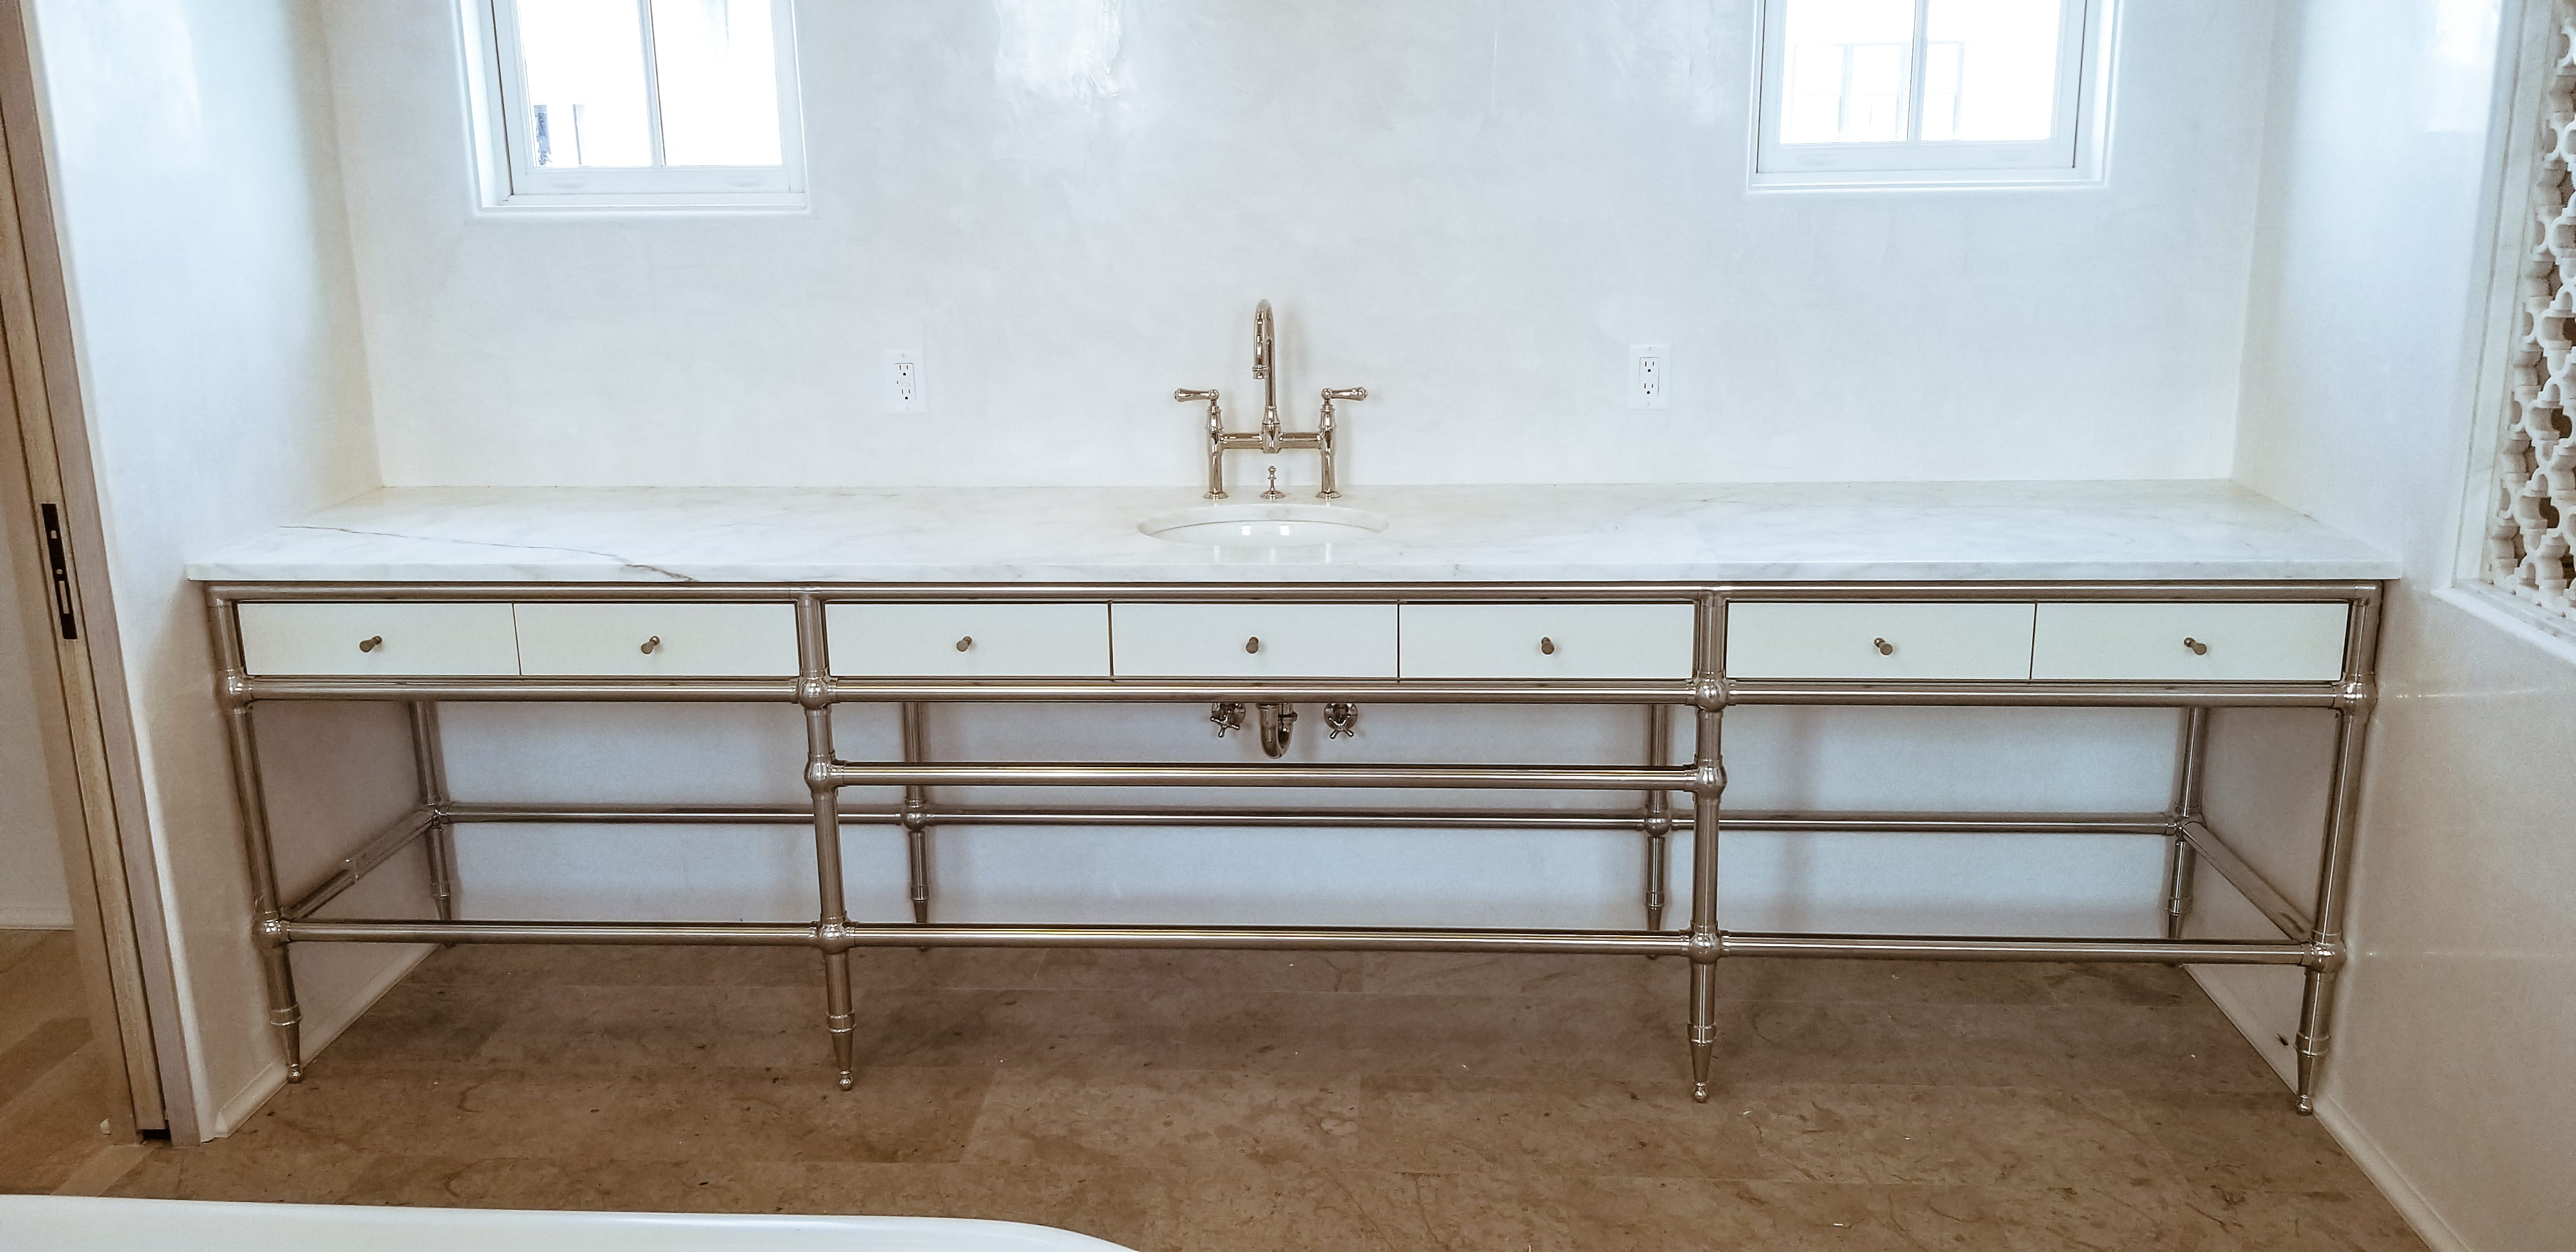 White vanity with metal rod detailing front view